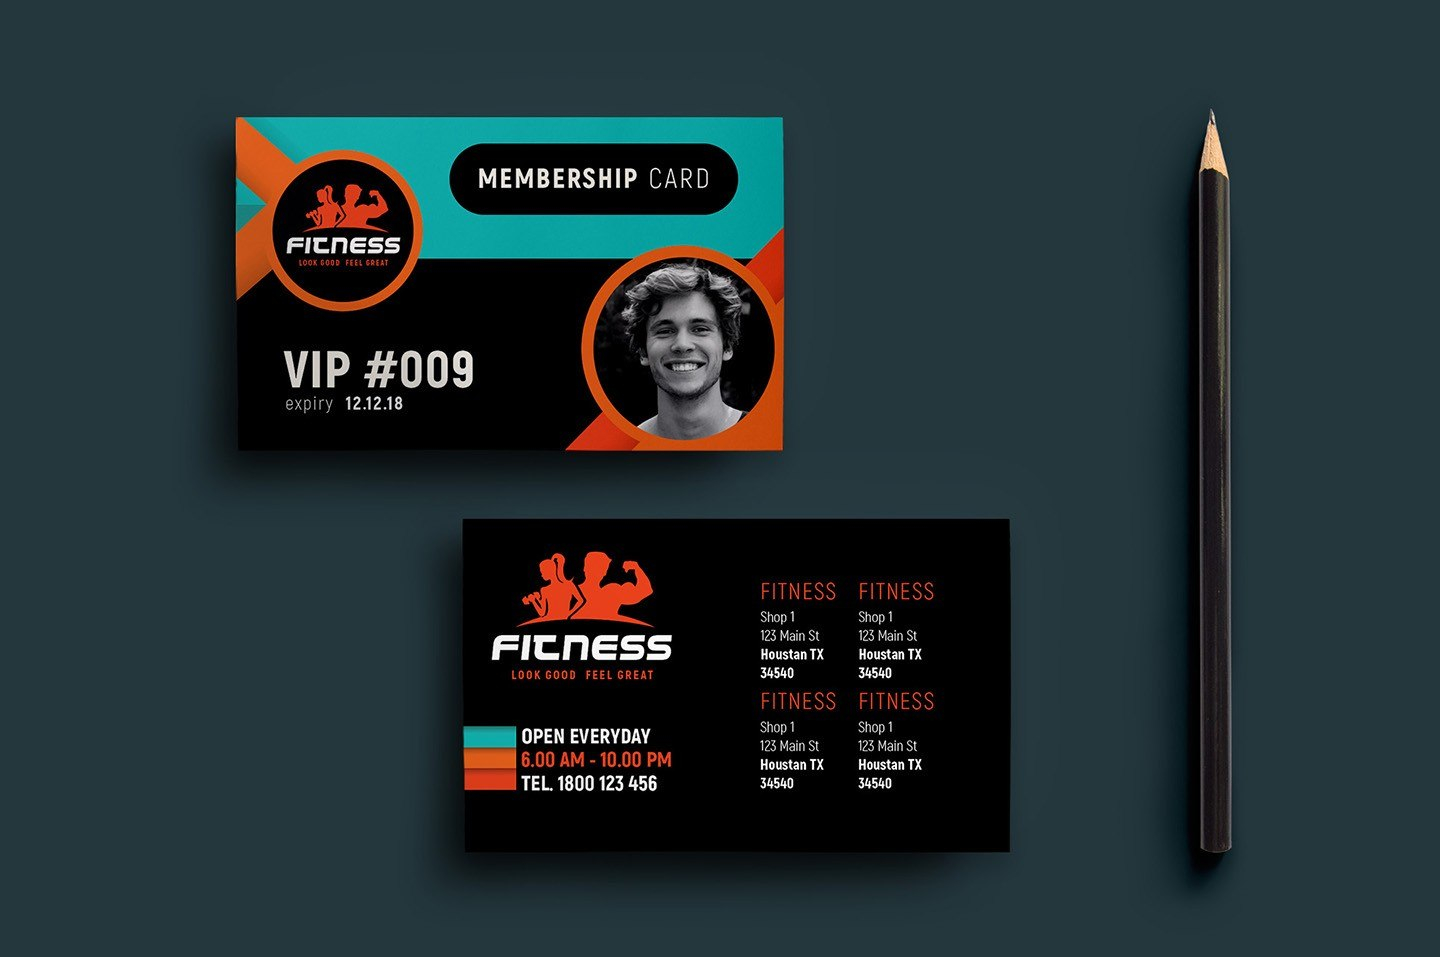 Gym Fitness Membership Card Template In Psd Ai Vector – Nurul Amal Intended For Gym Membership Card Template